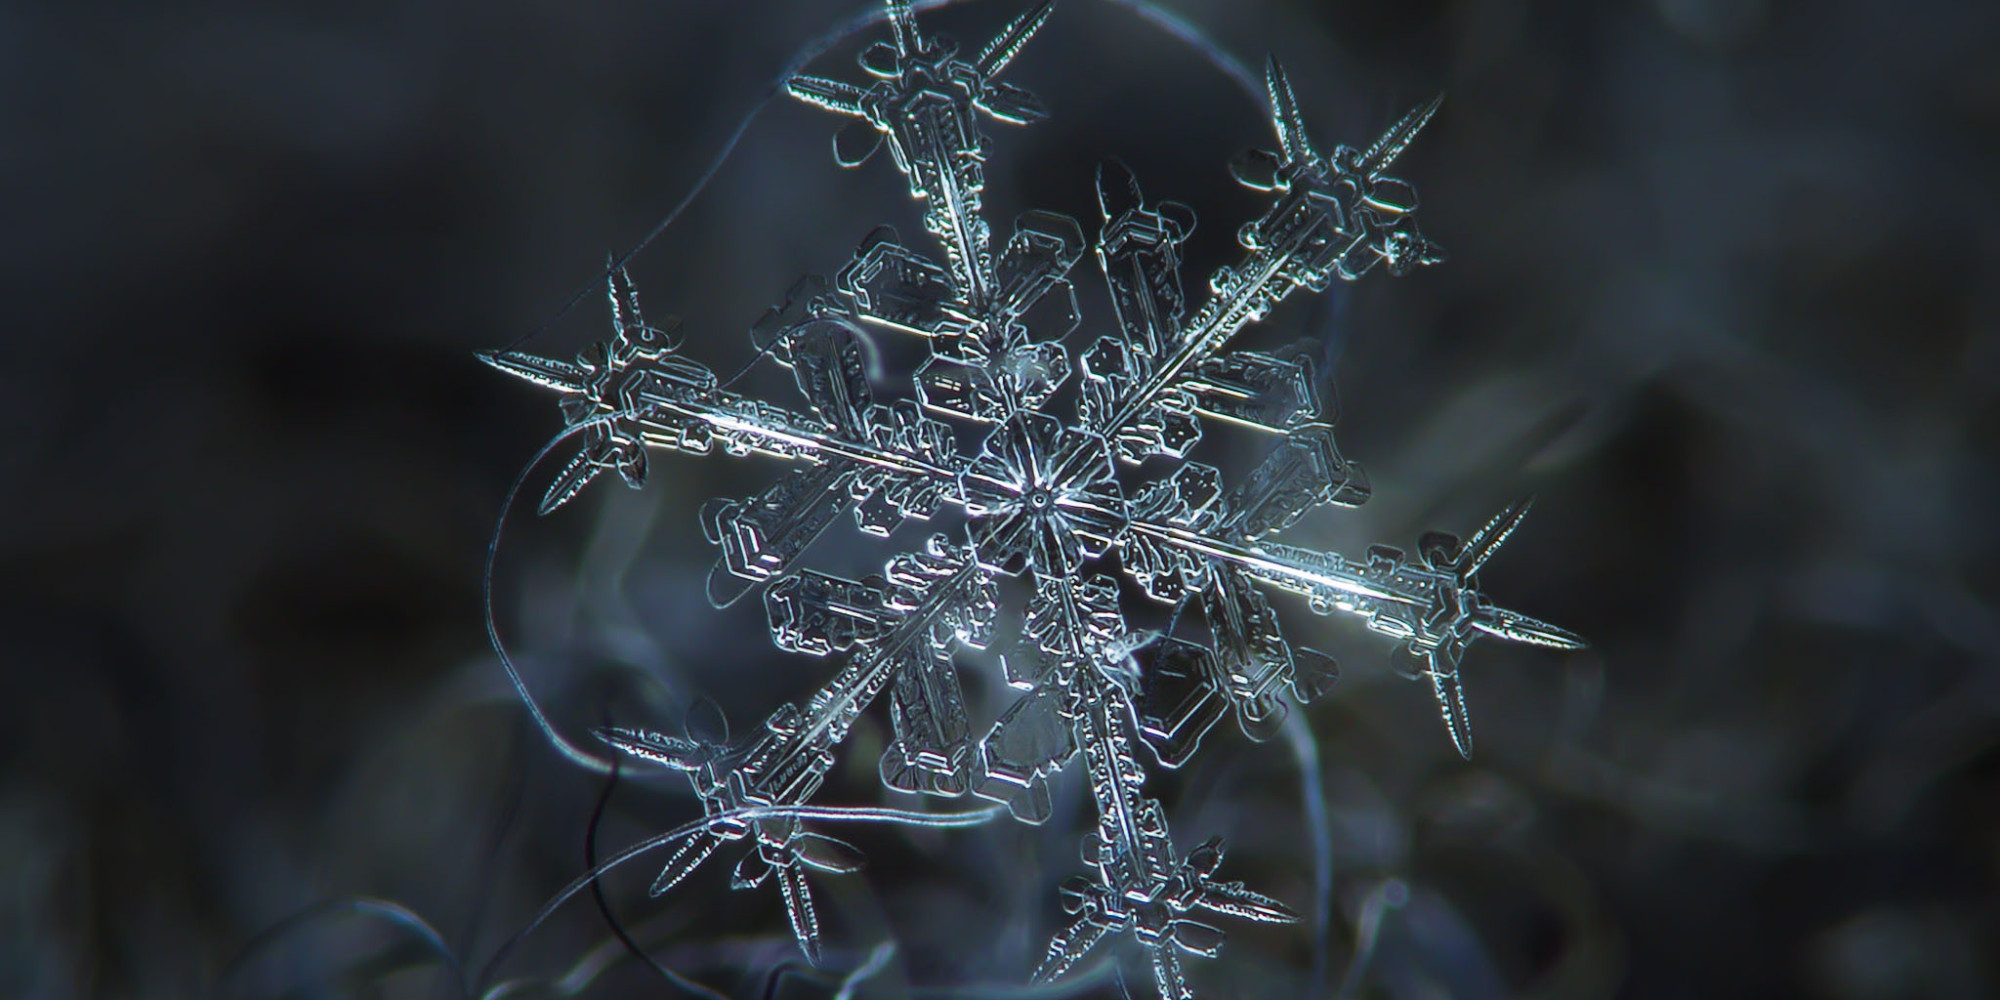 Unbelievable Close-Up Photos Of Snowflakes Reveal A Side Of Winter ...